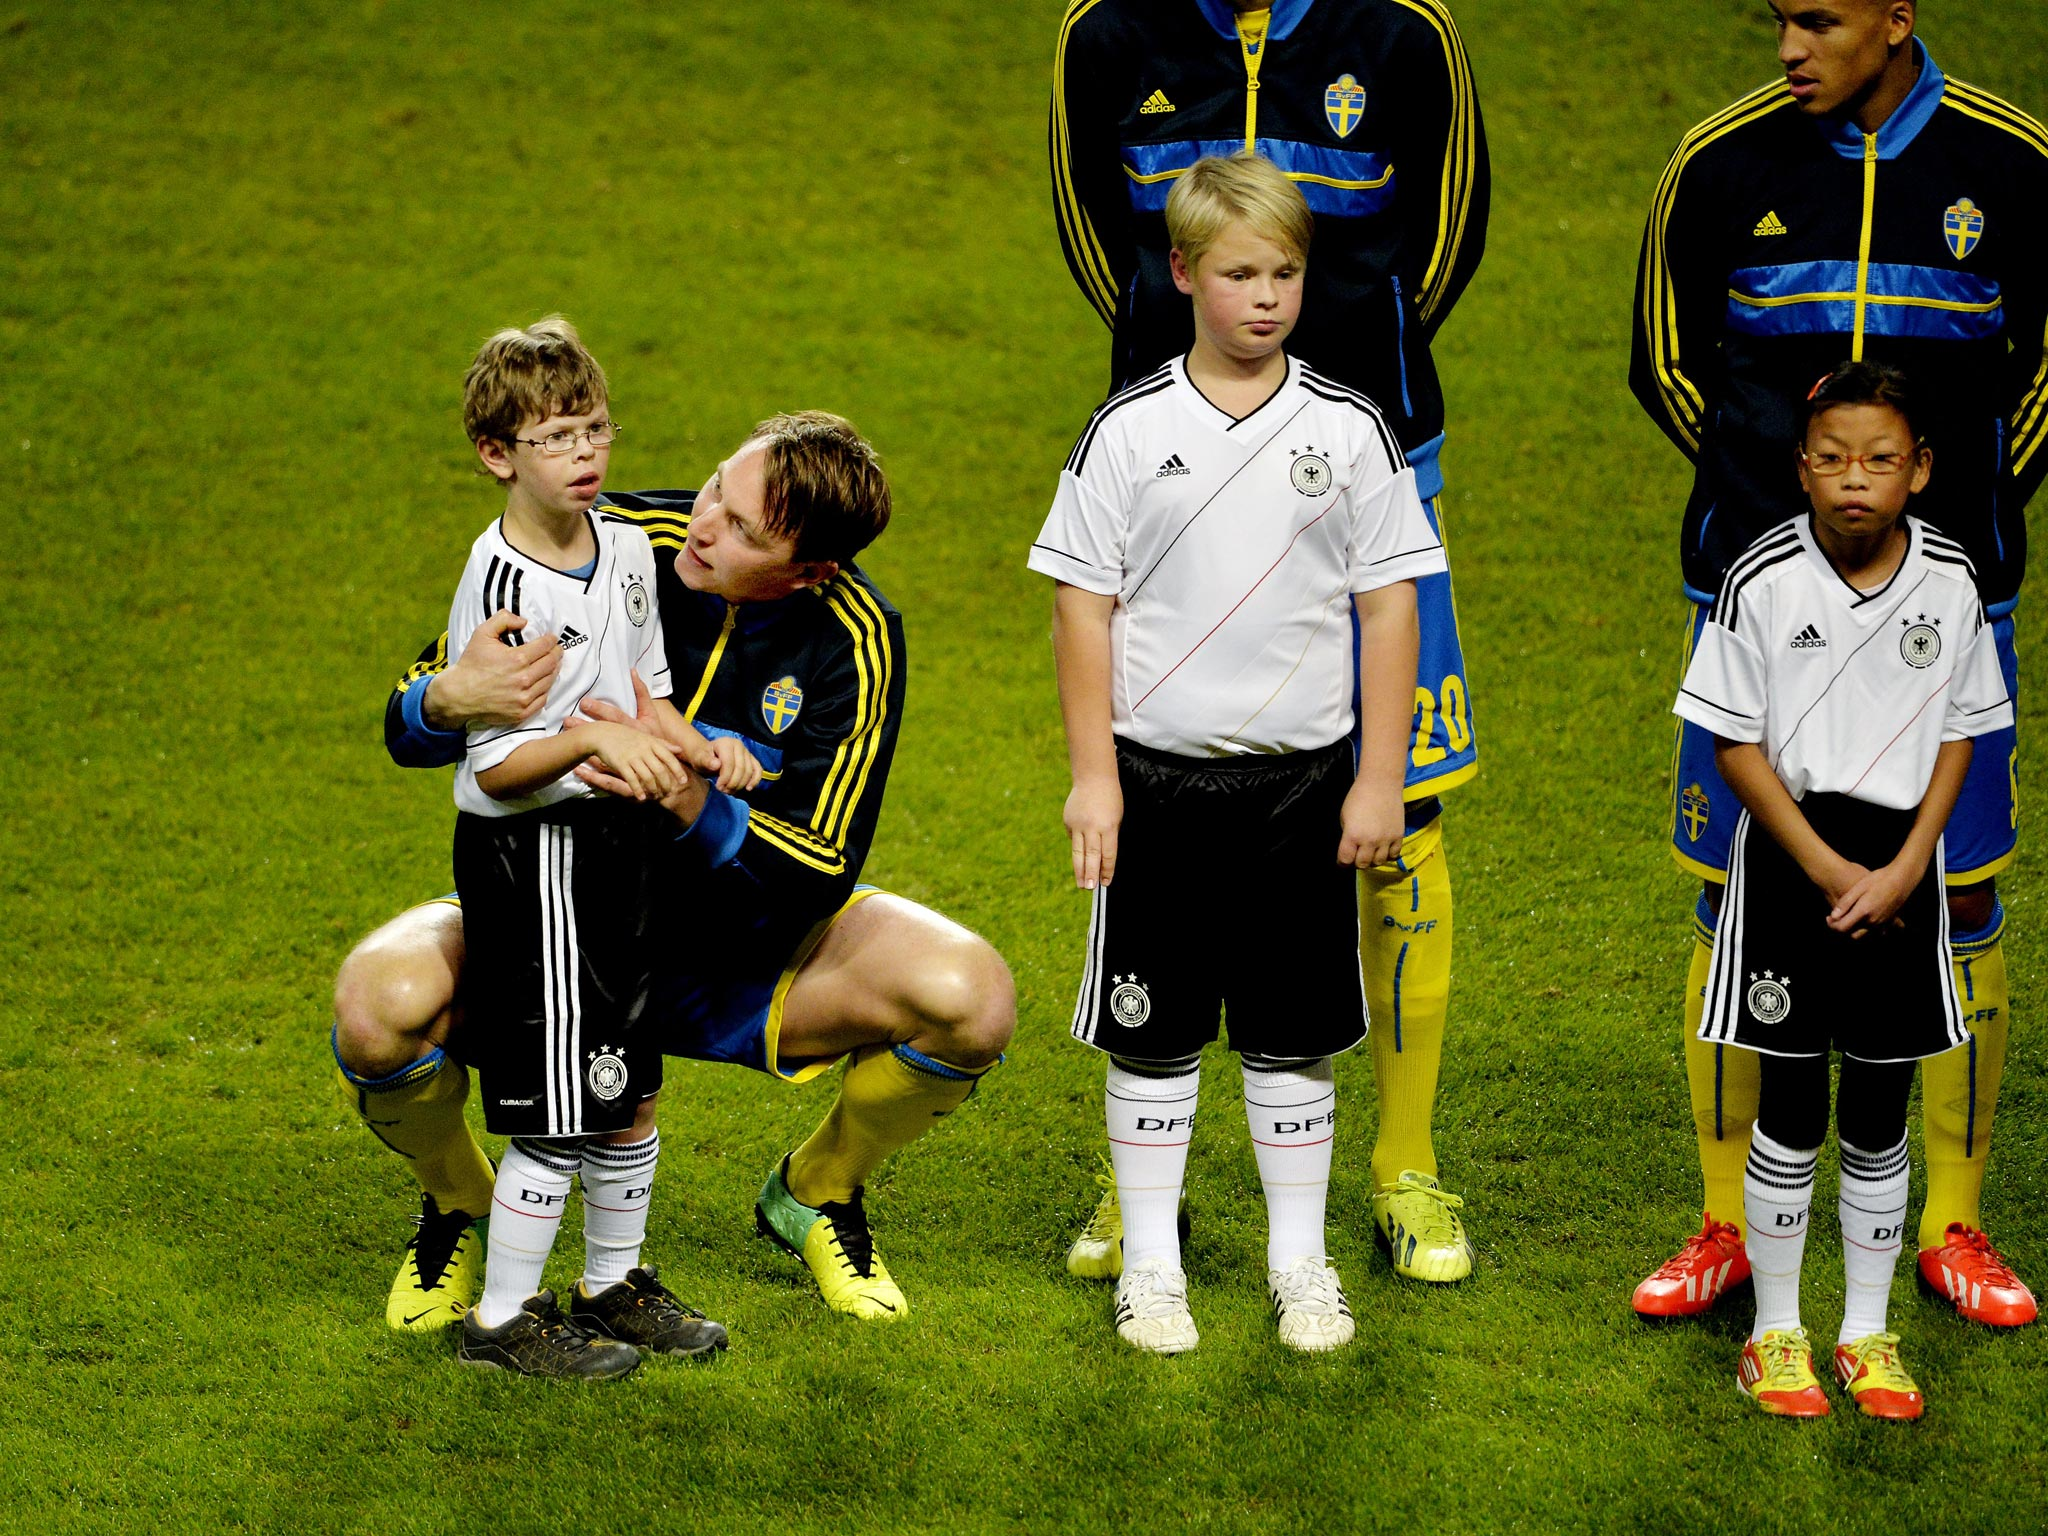 Swedish footballer Kim Källström comforts eight-year-old boy